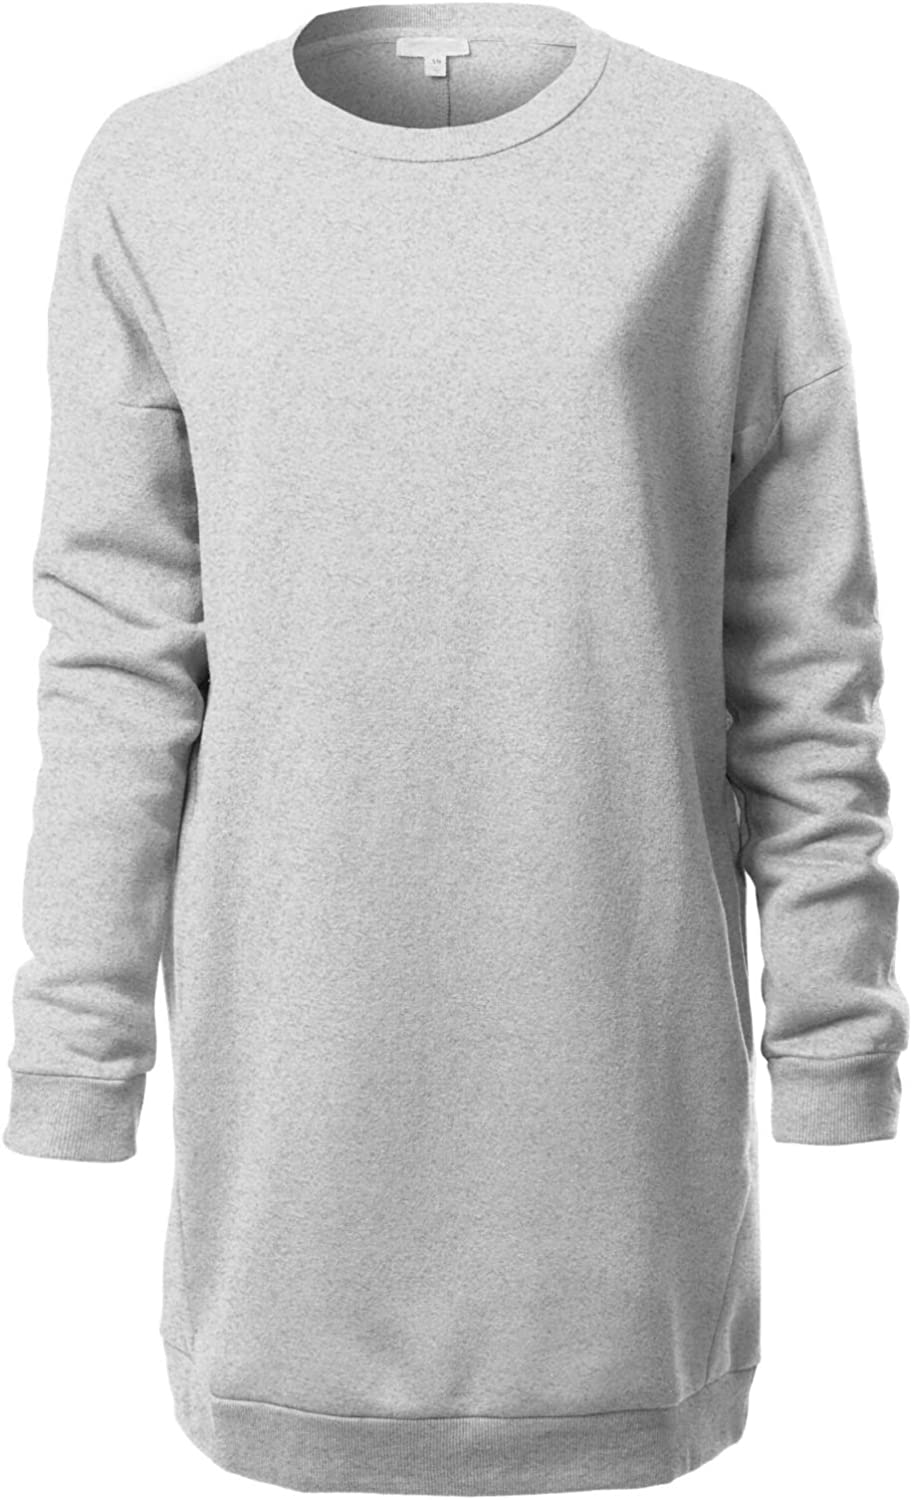 Grey Loose Tunic with Long Sleeves Open Back Autumn Casual Top